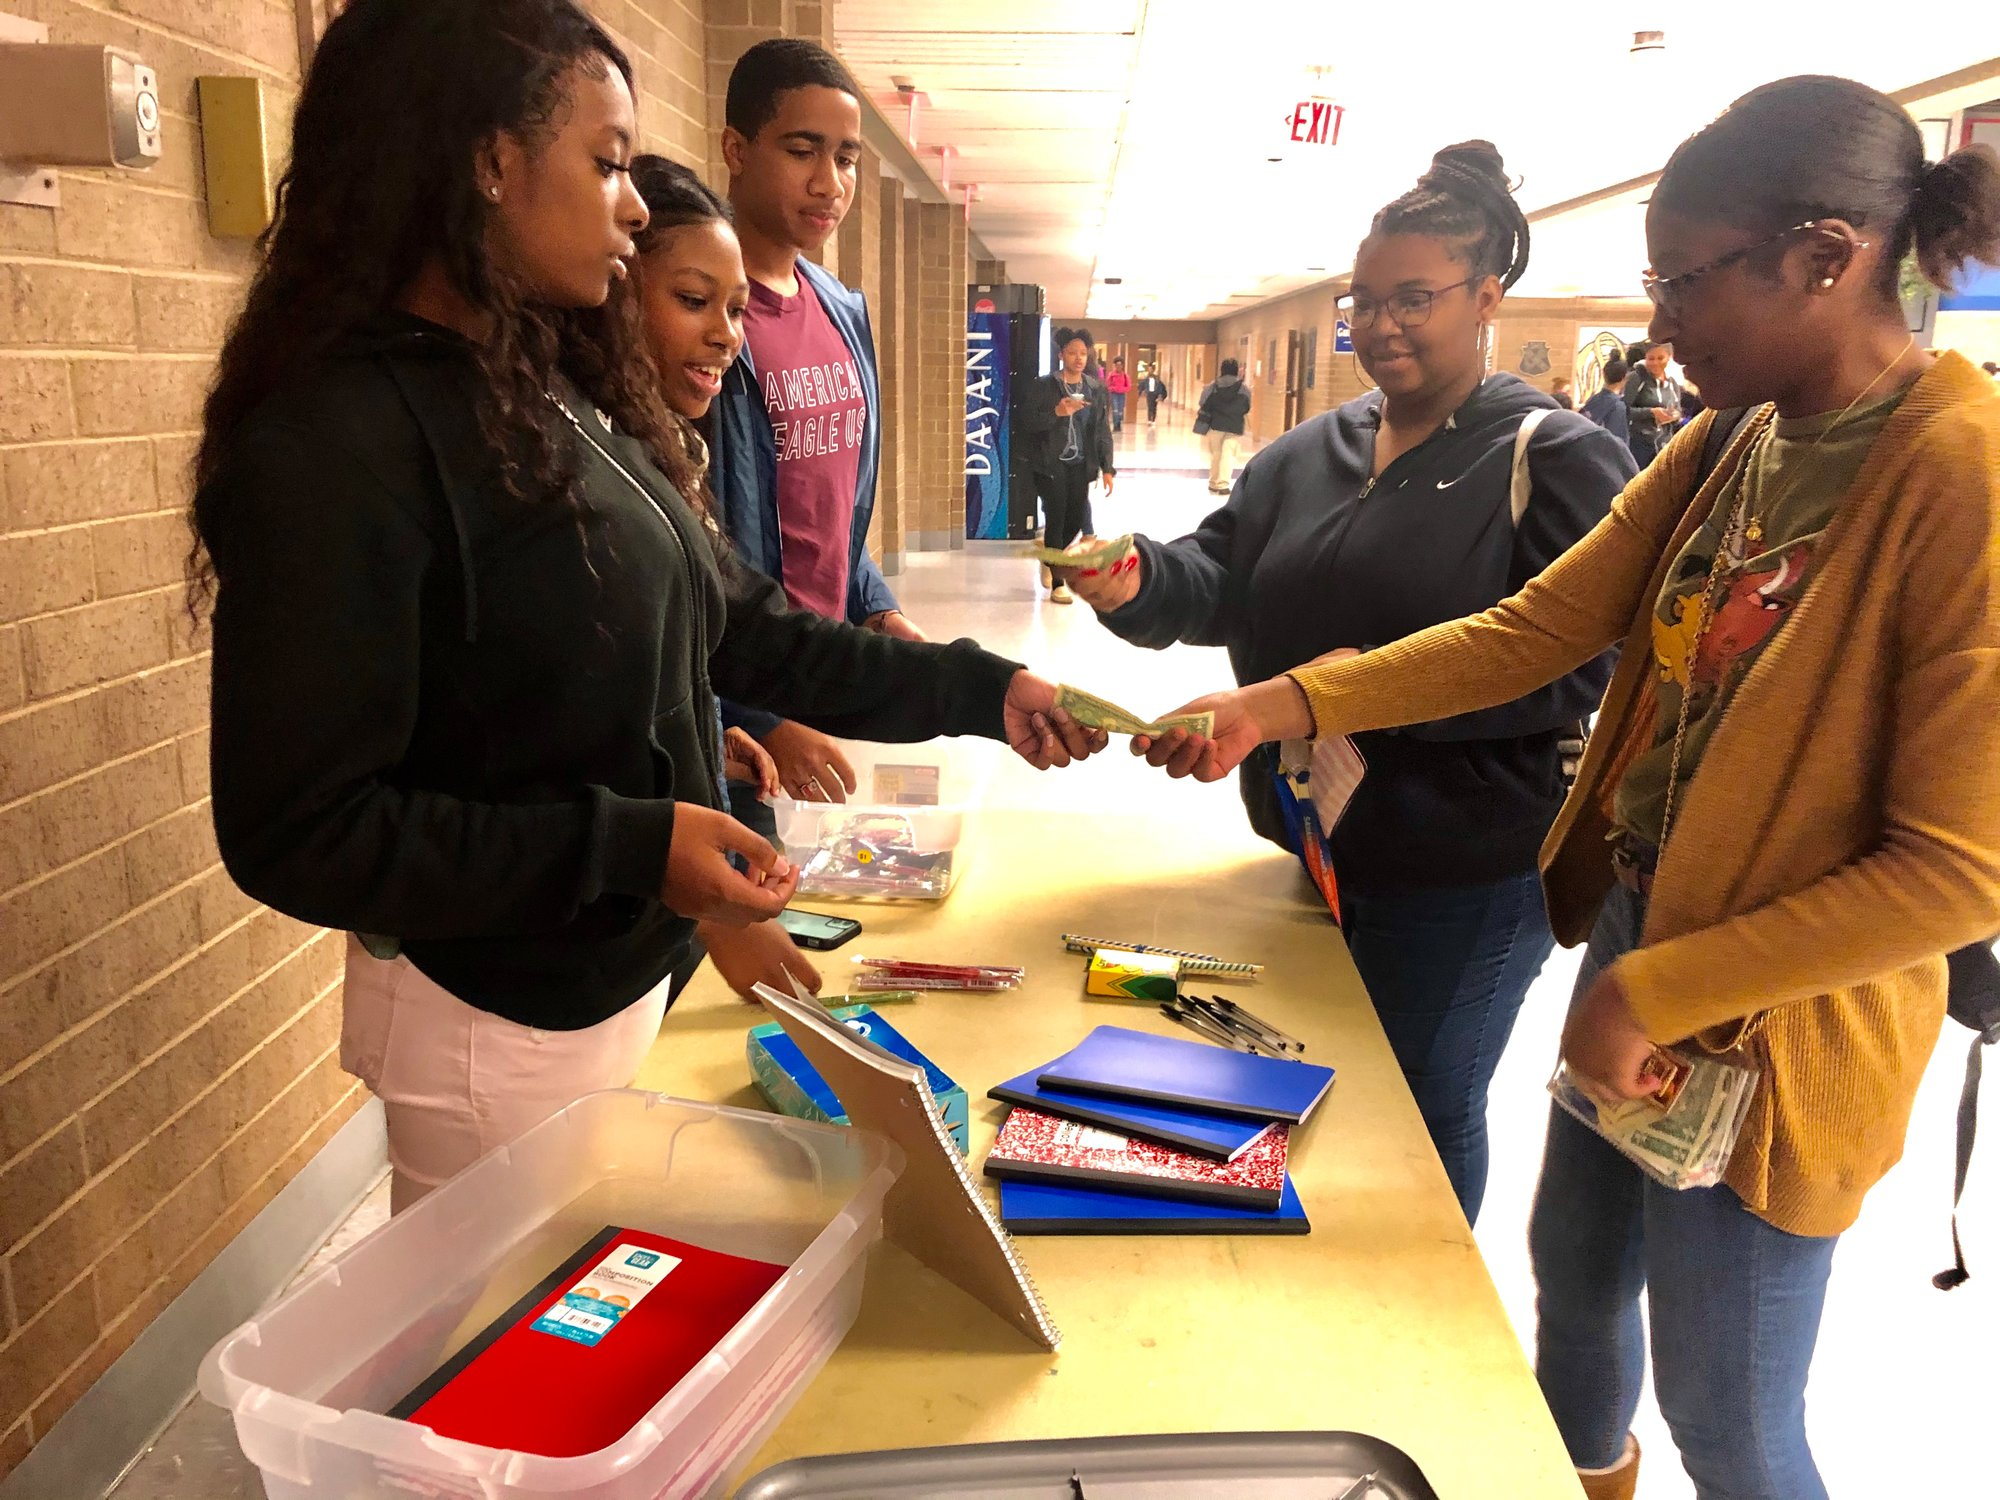 PHOTO PROVIDEDSumter High AVID students sell school supplies and other items to other students through the AVID school store recently.